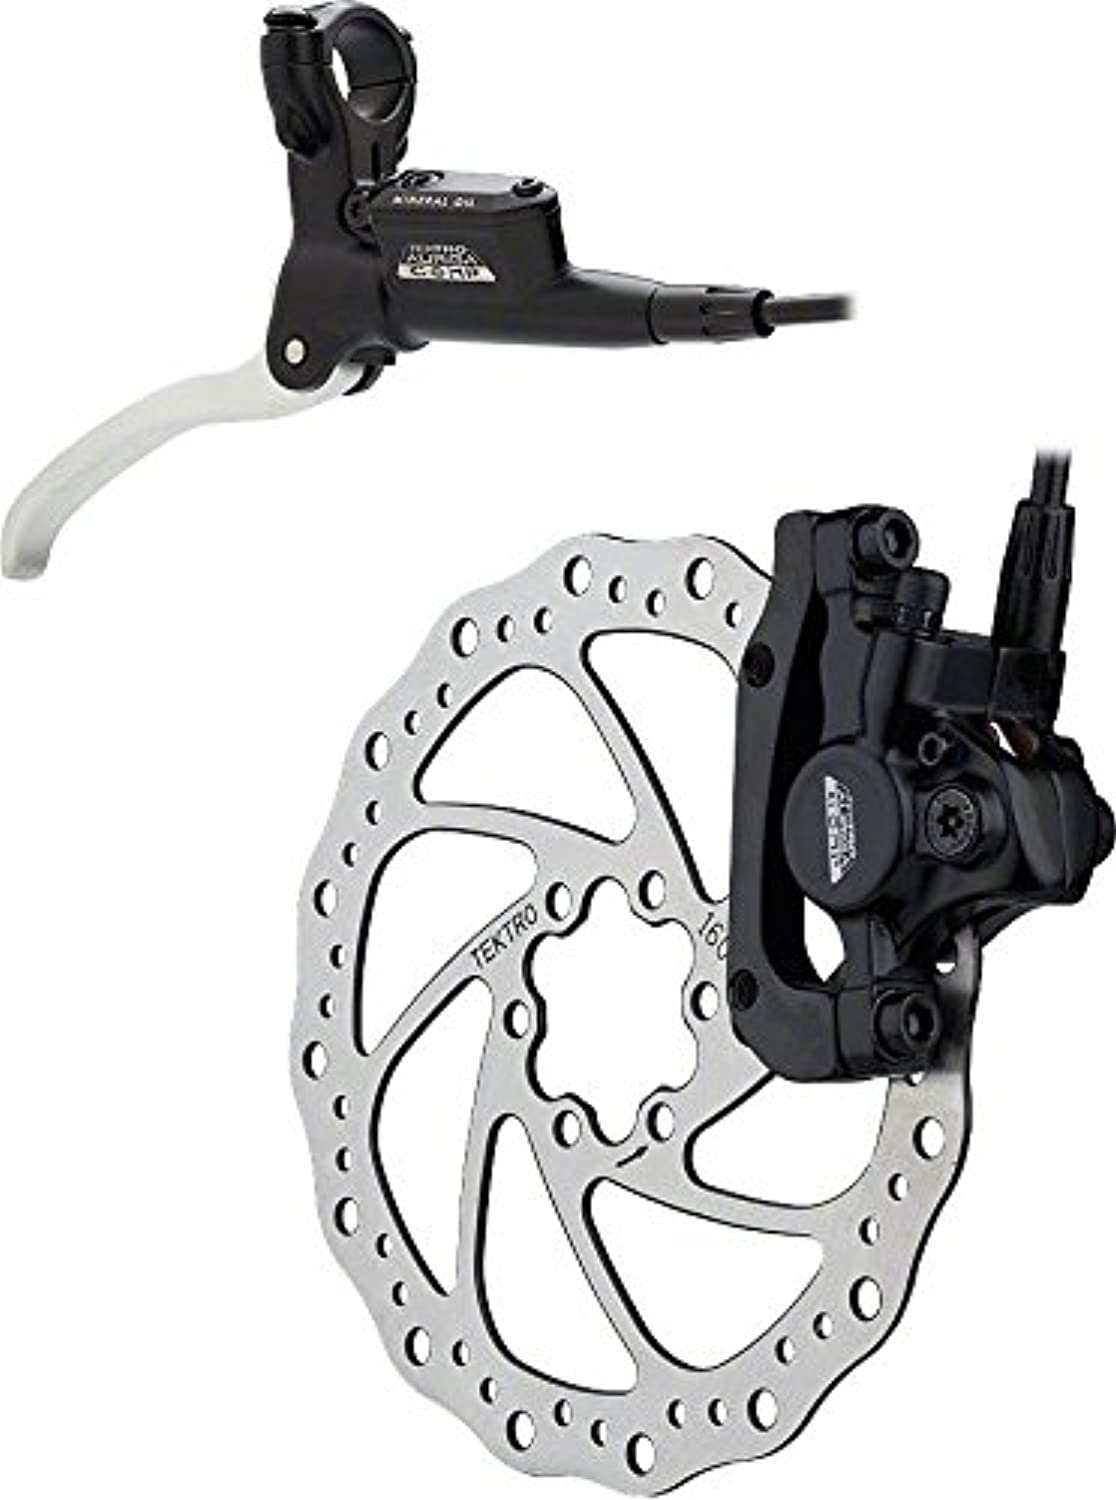 Tektro Auriga Comp Rear Disc Brake, 180 mm Diameter Black Hydraulic